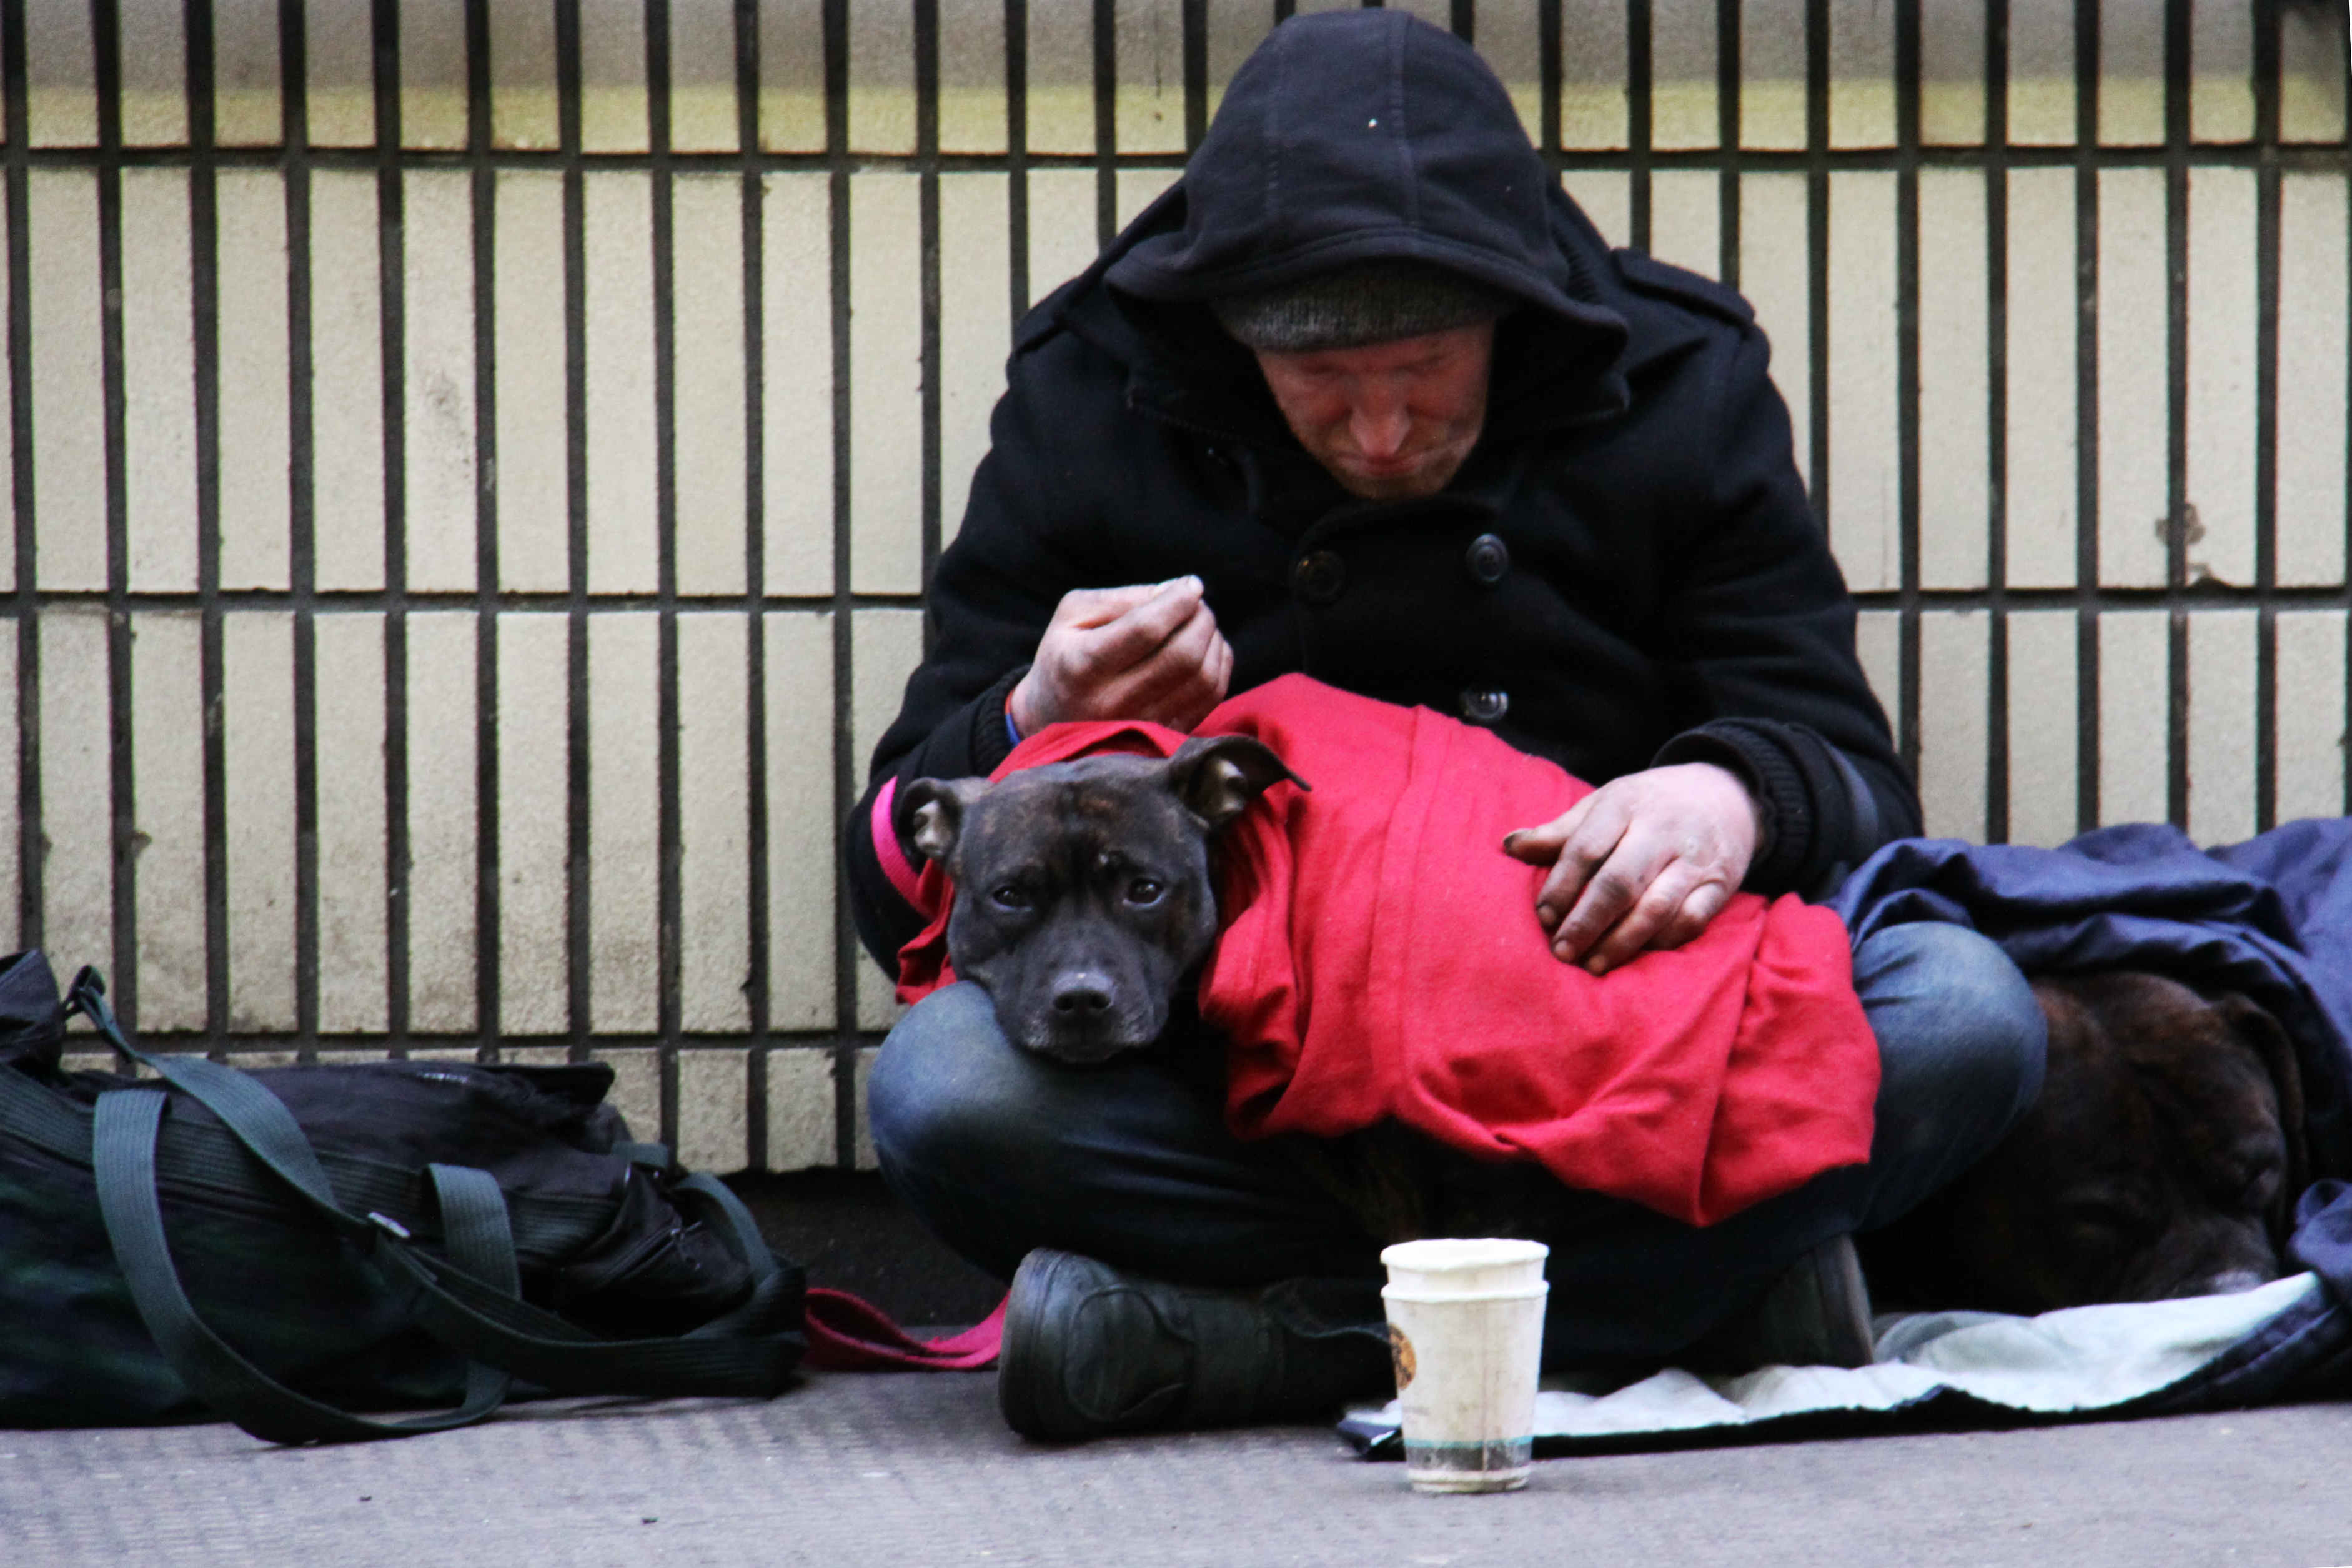 """""""I was working in London and came across this homeless man on the street.  As I went to take this photograph to raise the plight of the homeless, his dog looked right at me with such sorrowful eyes.  It was then that I noticed the larger dog, curled up beside him.  I went to a local store, bought two cans of dog food and him a hot roll and drink from a caf\u00e9.  Since then, each year, rather than buying Christmas cards for family and friends, I always donate enough money to give a homeless person a shower, clothes and cooked meal and a place to stay on Christmas Day, via the UK charity, Crisis."""""""